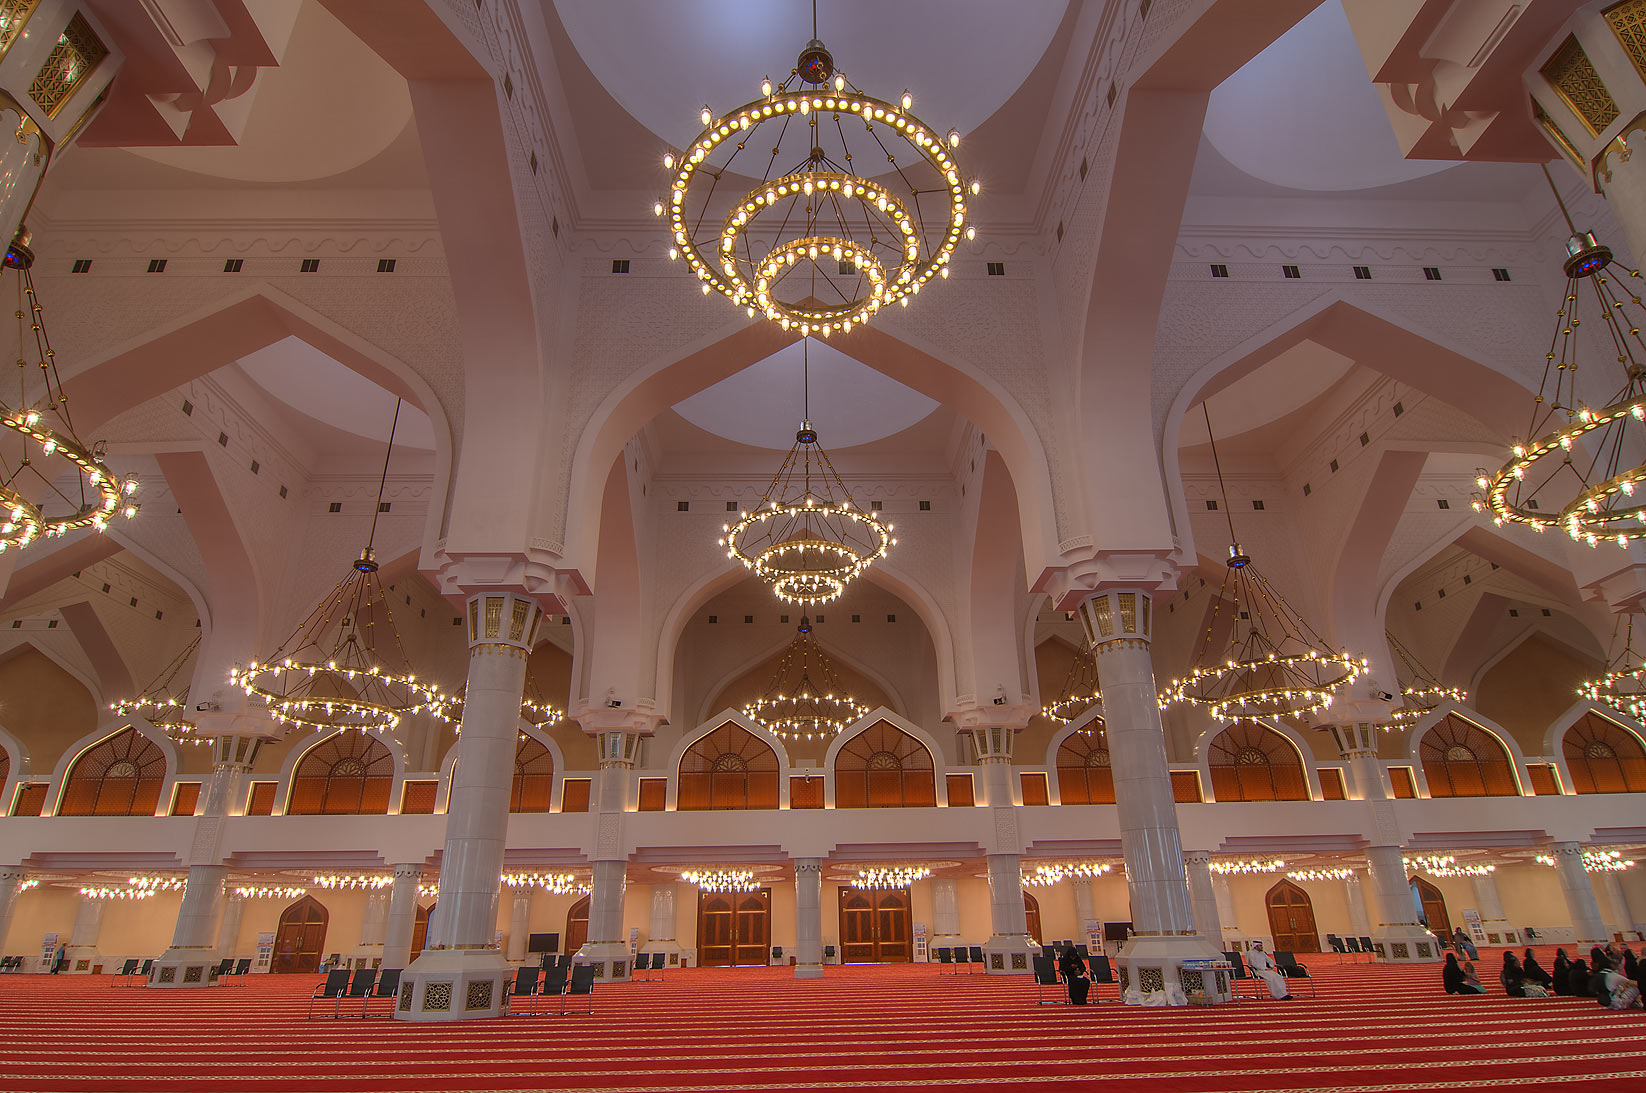 Evening interior of State Mosque (Sheikh Muhammad Ibn Abdul Wahhab Mosque). Doha, Qatar